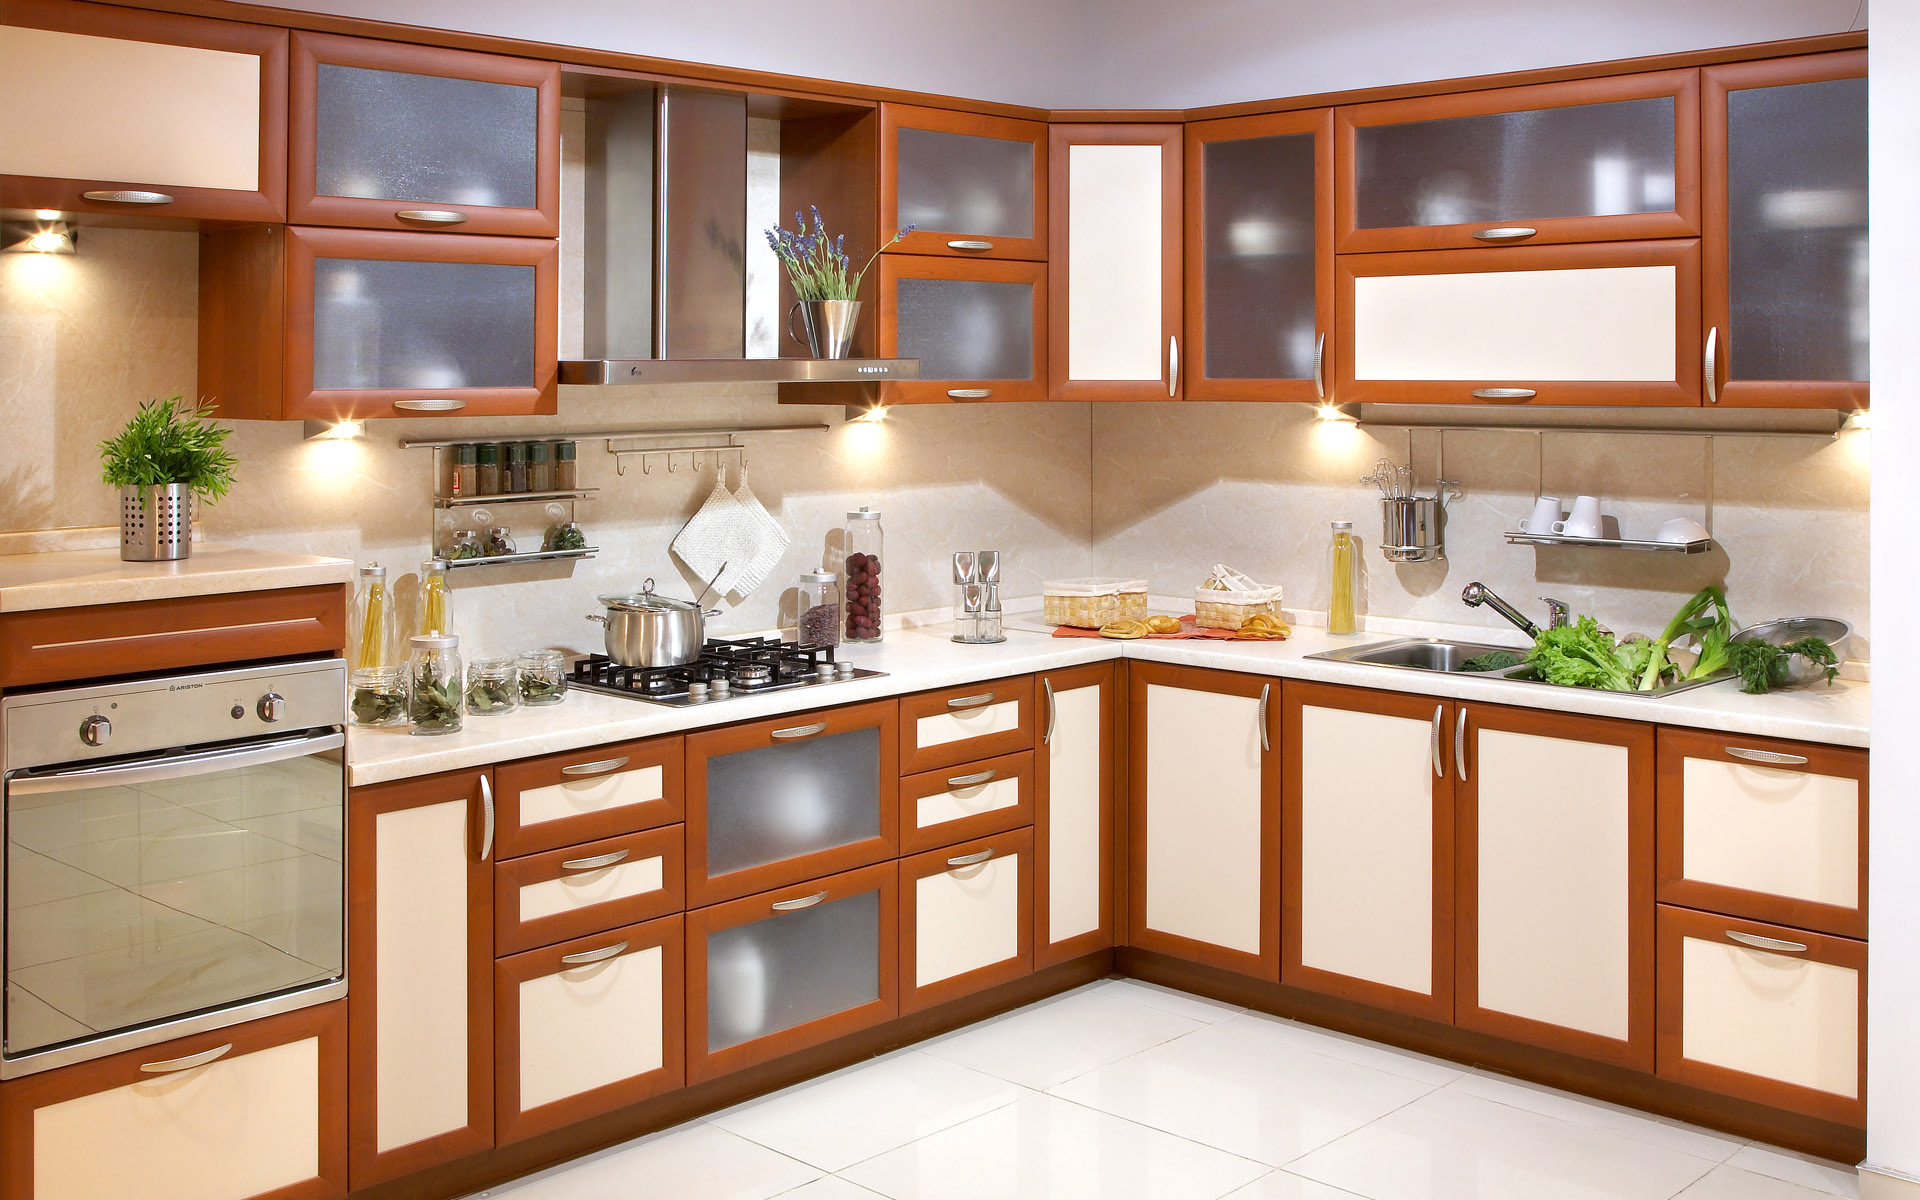 Kitchen Wallpaper 34 Wallpapers Adorable Wallpapers